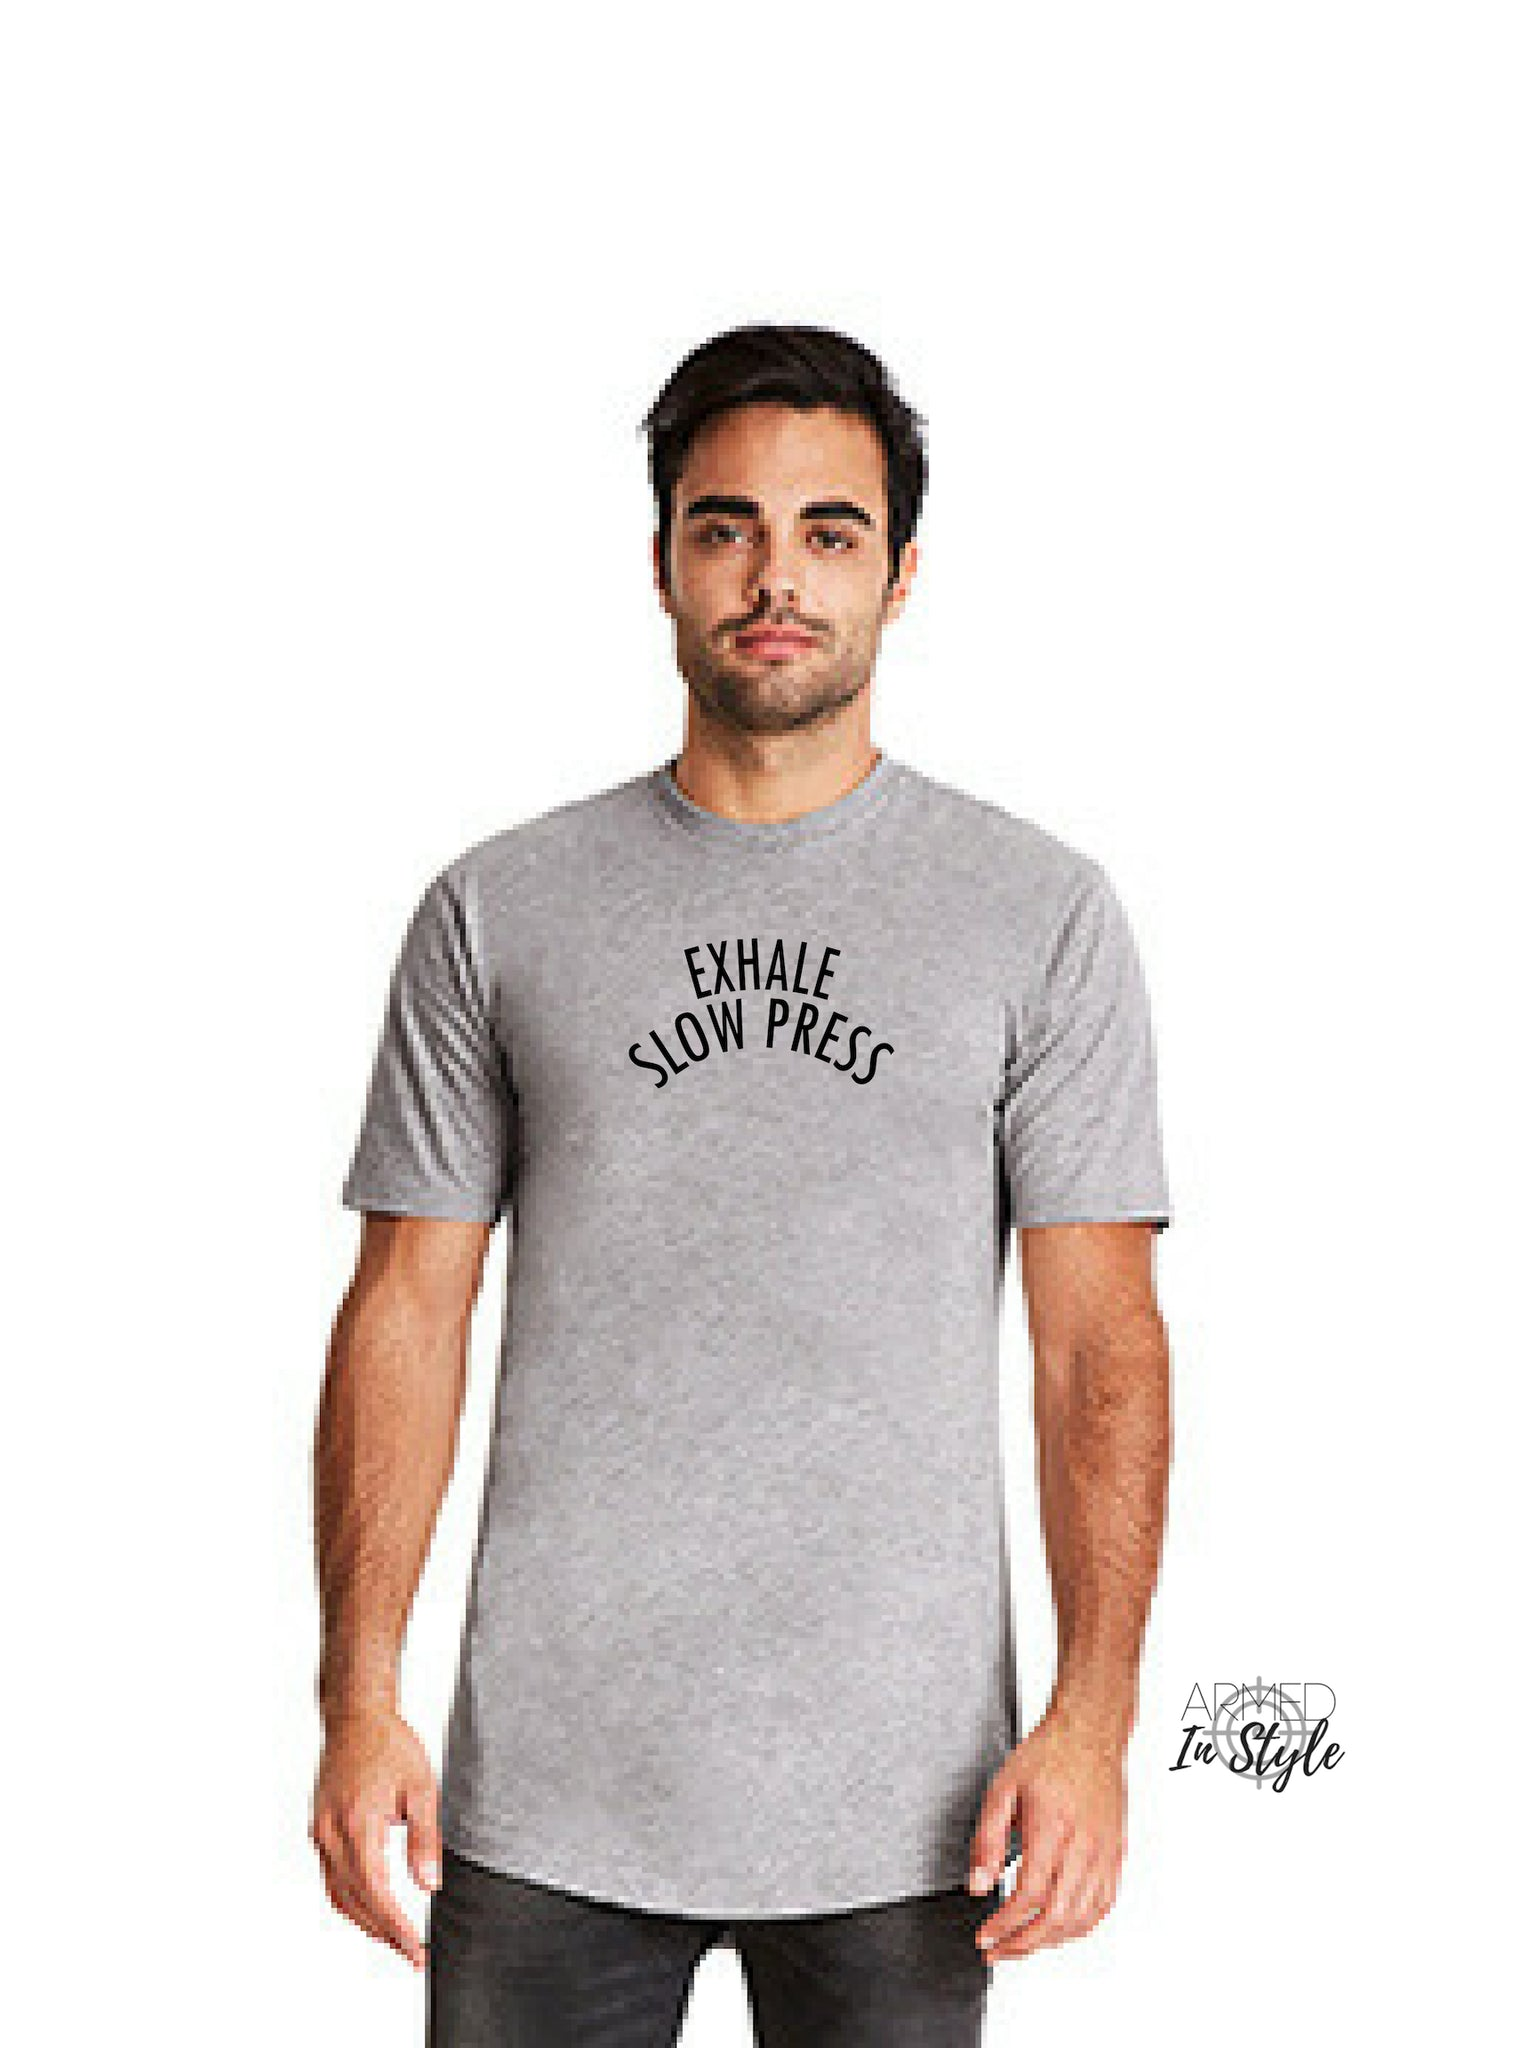 Exhale Slow Press, Men's Urban T-Shirt